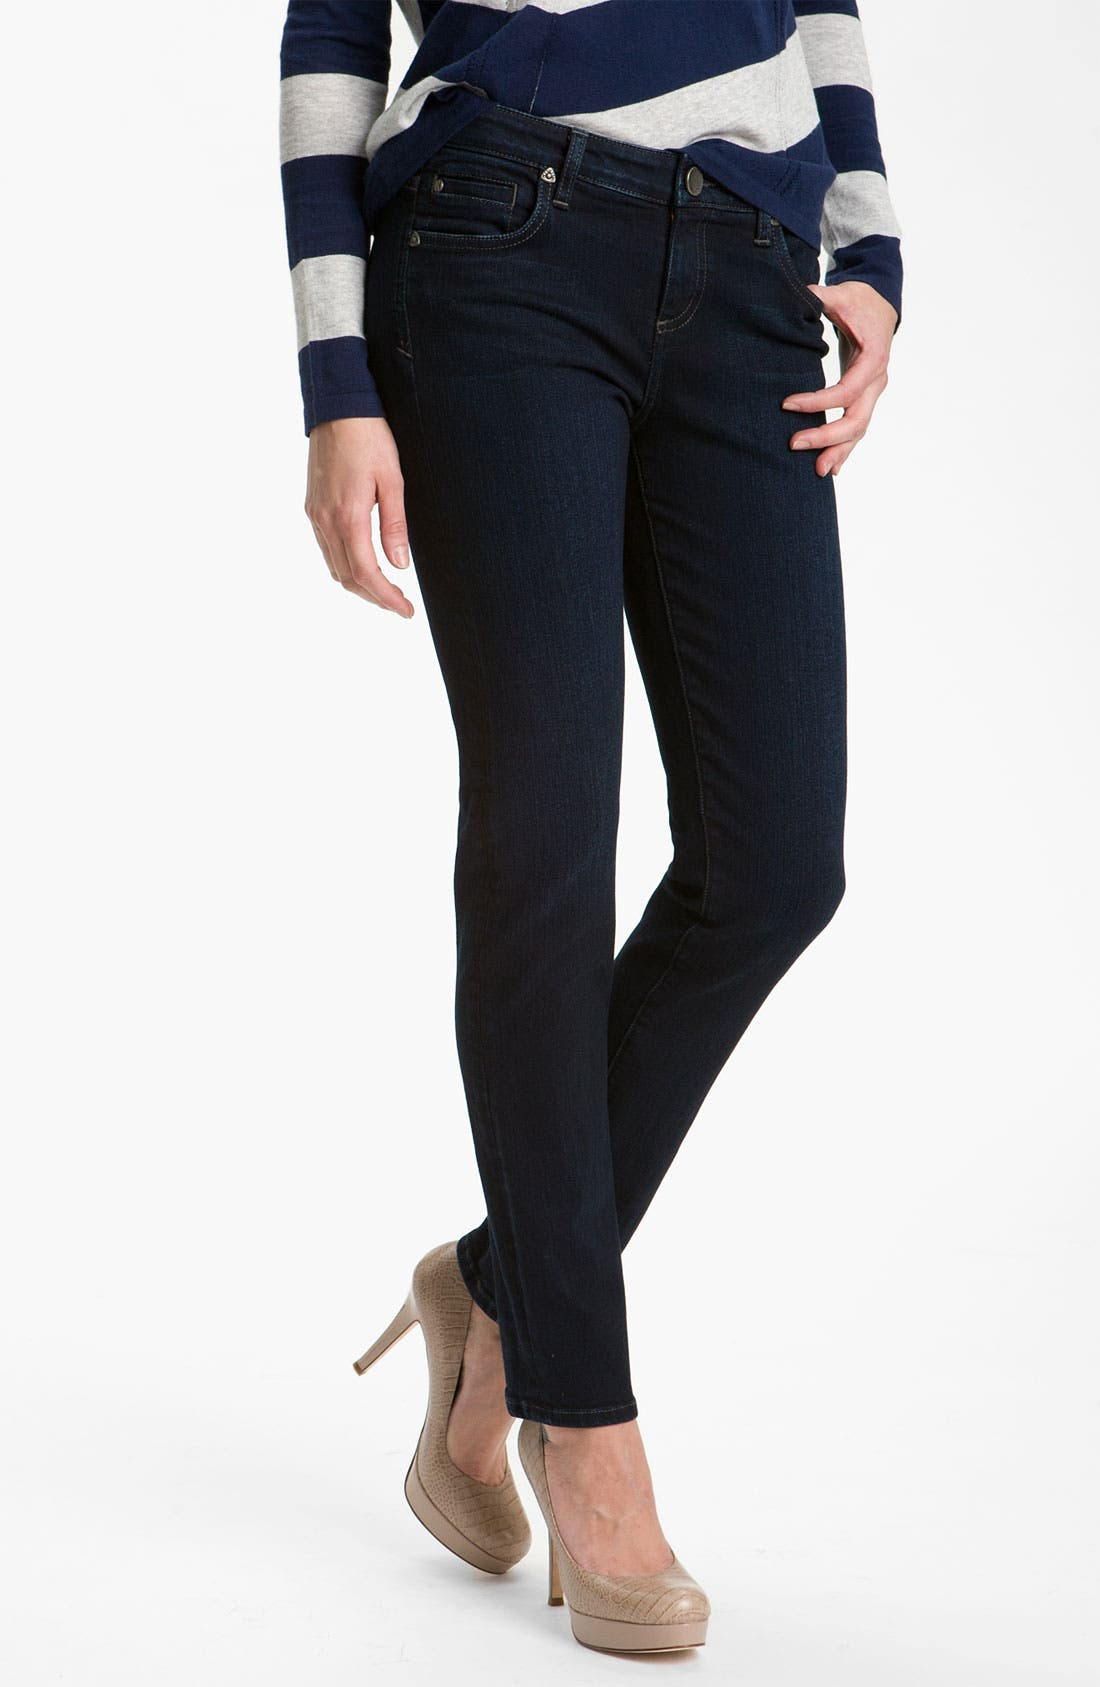 Main Image - KUT from the Kloth 'Diana' Skinny Jeans (Exquisite Wash)